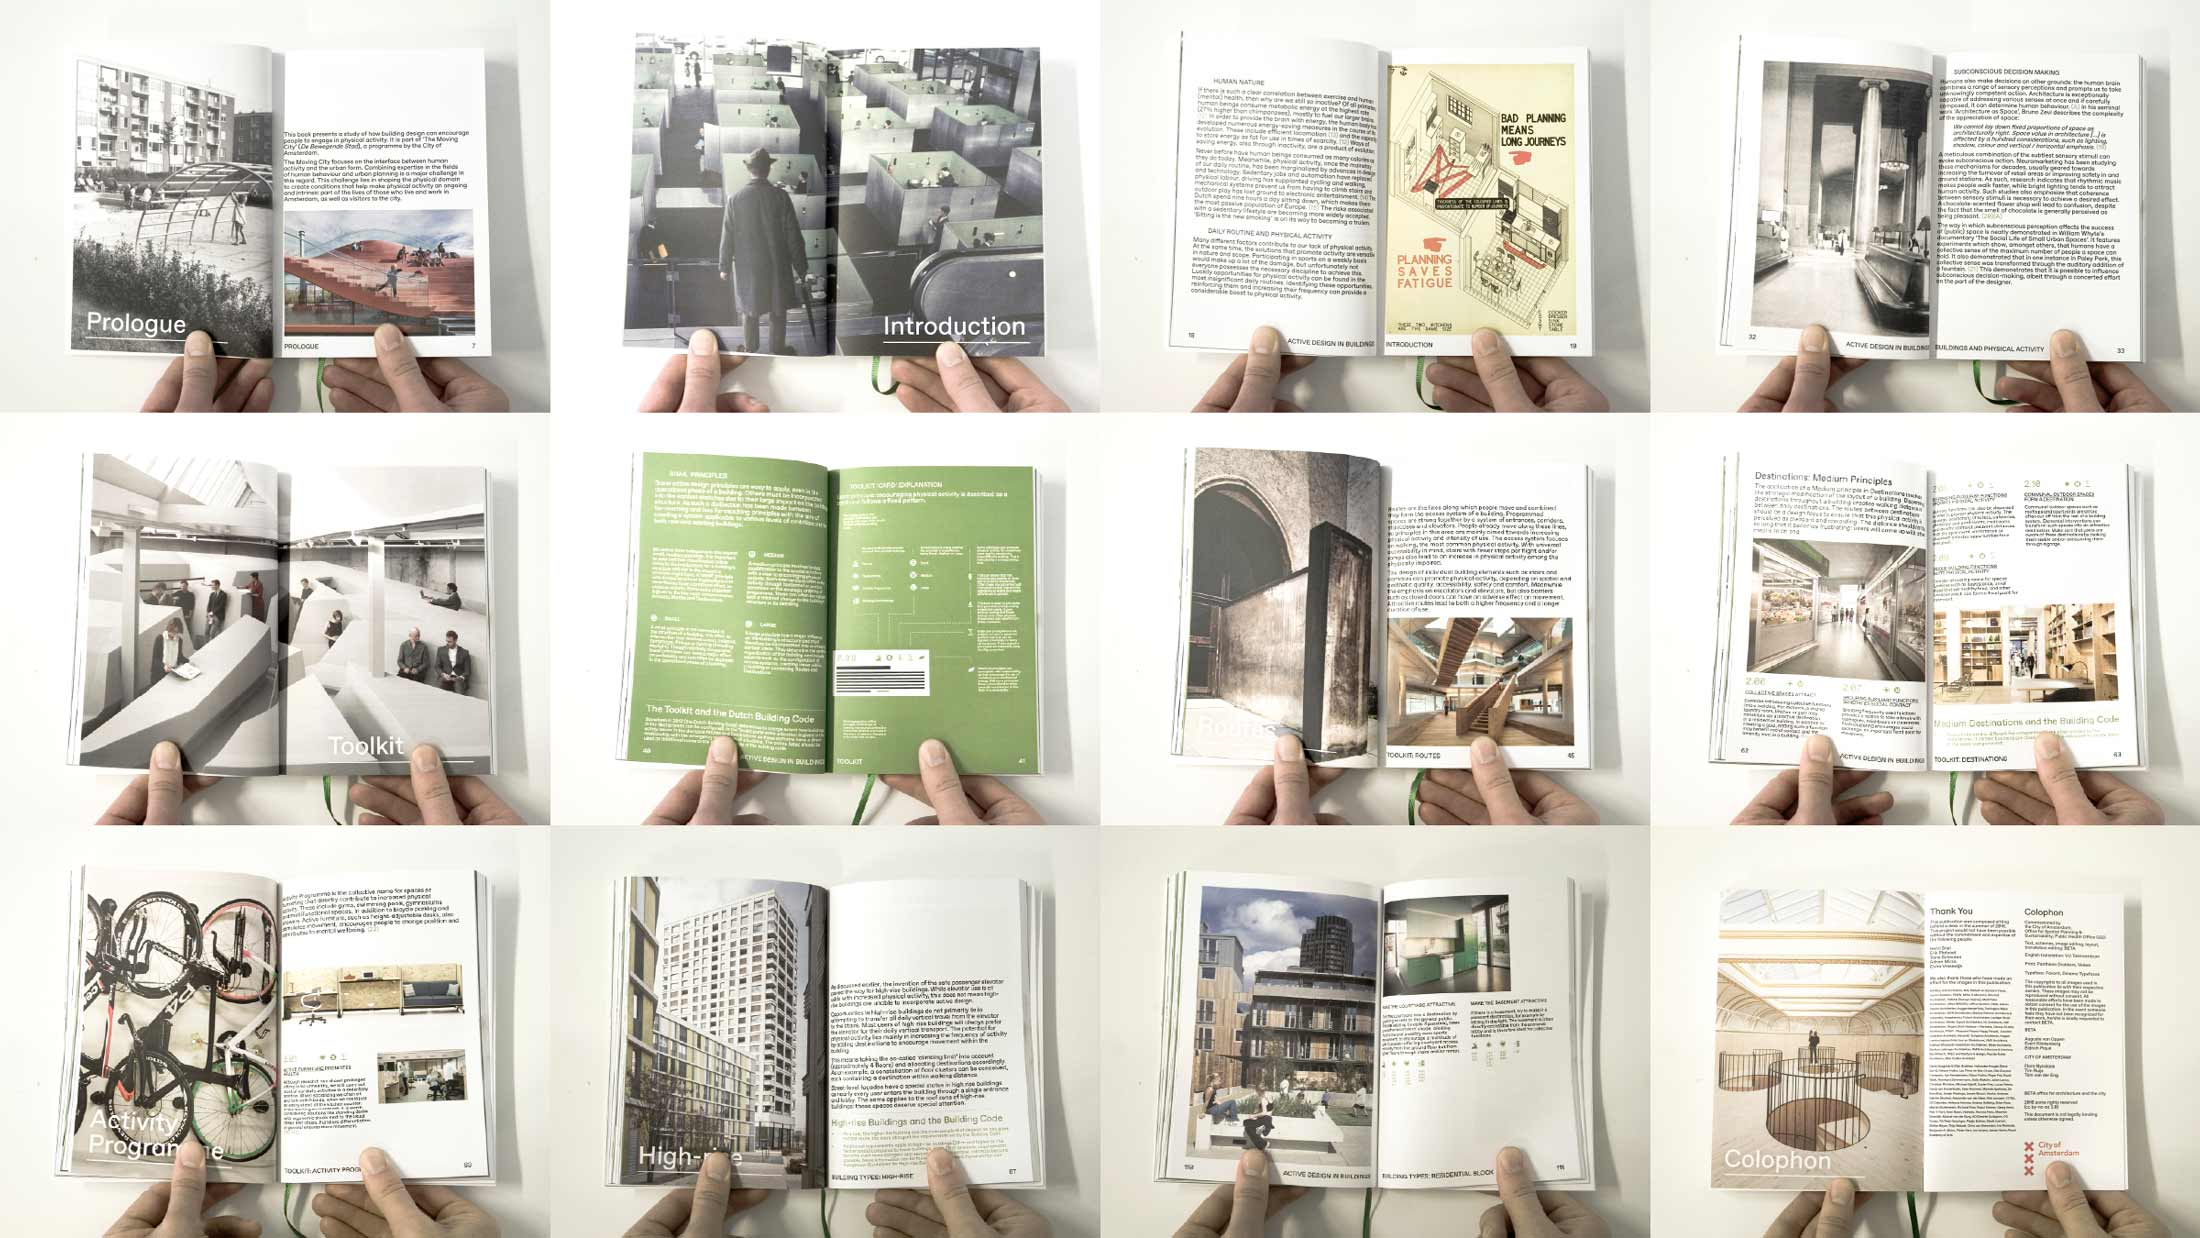 BETA office for architecture and the city Amsterdam Active Design in Buildings book collage